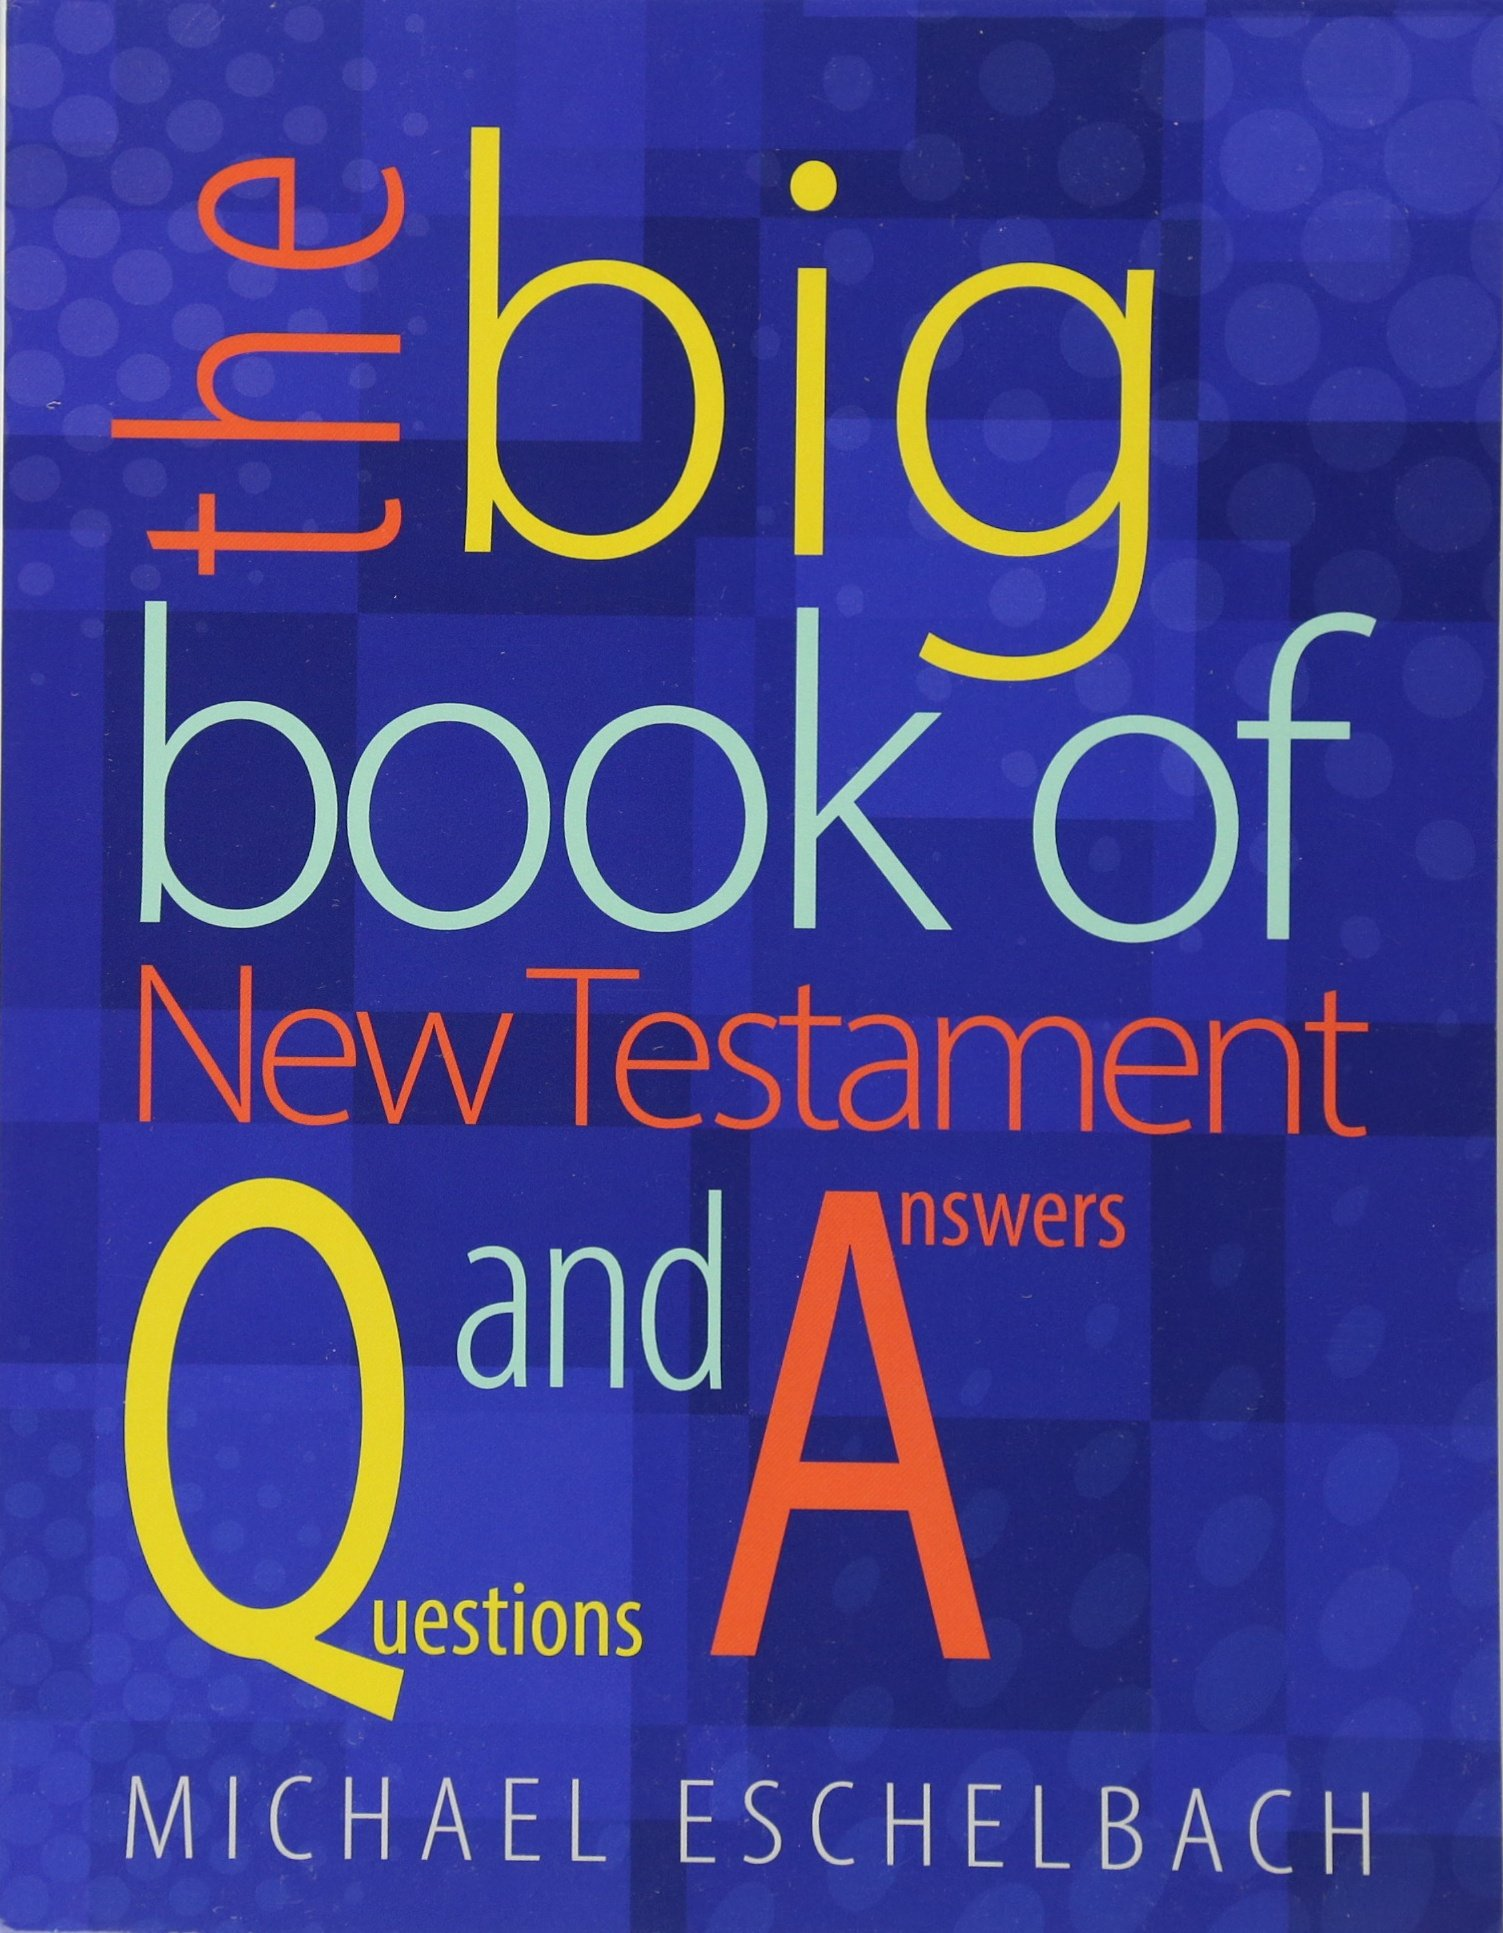 The Big Book of New Testament Questions and Answers: Michael Eschelbach:  9780758649195: Amazon.com: Books